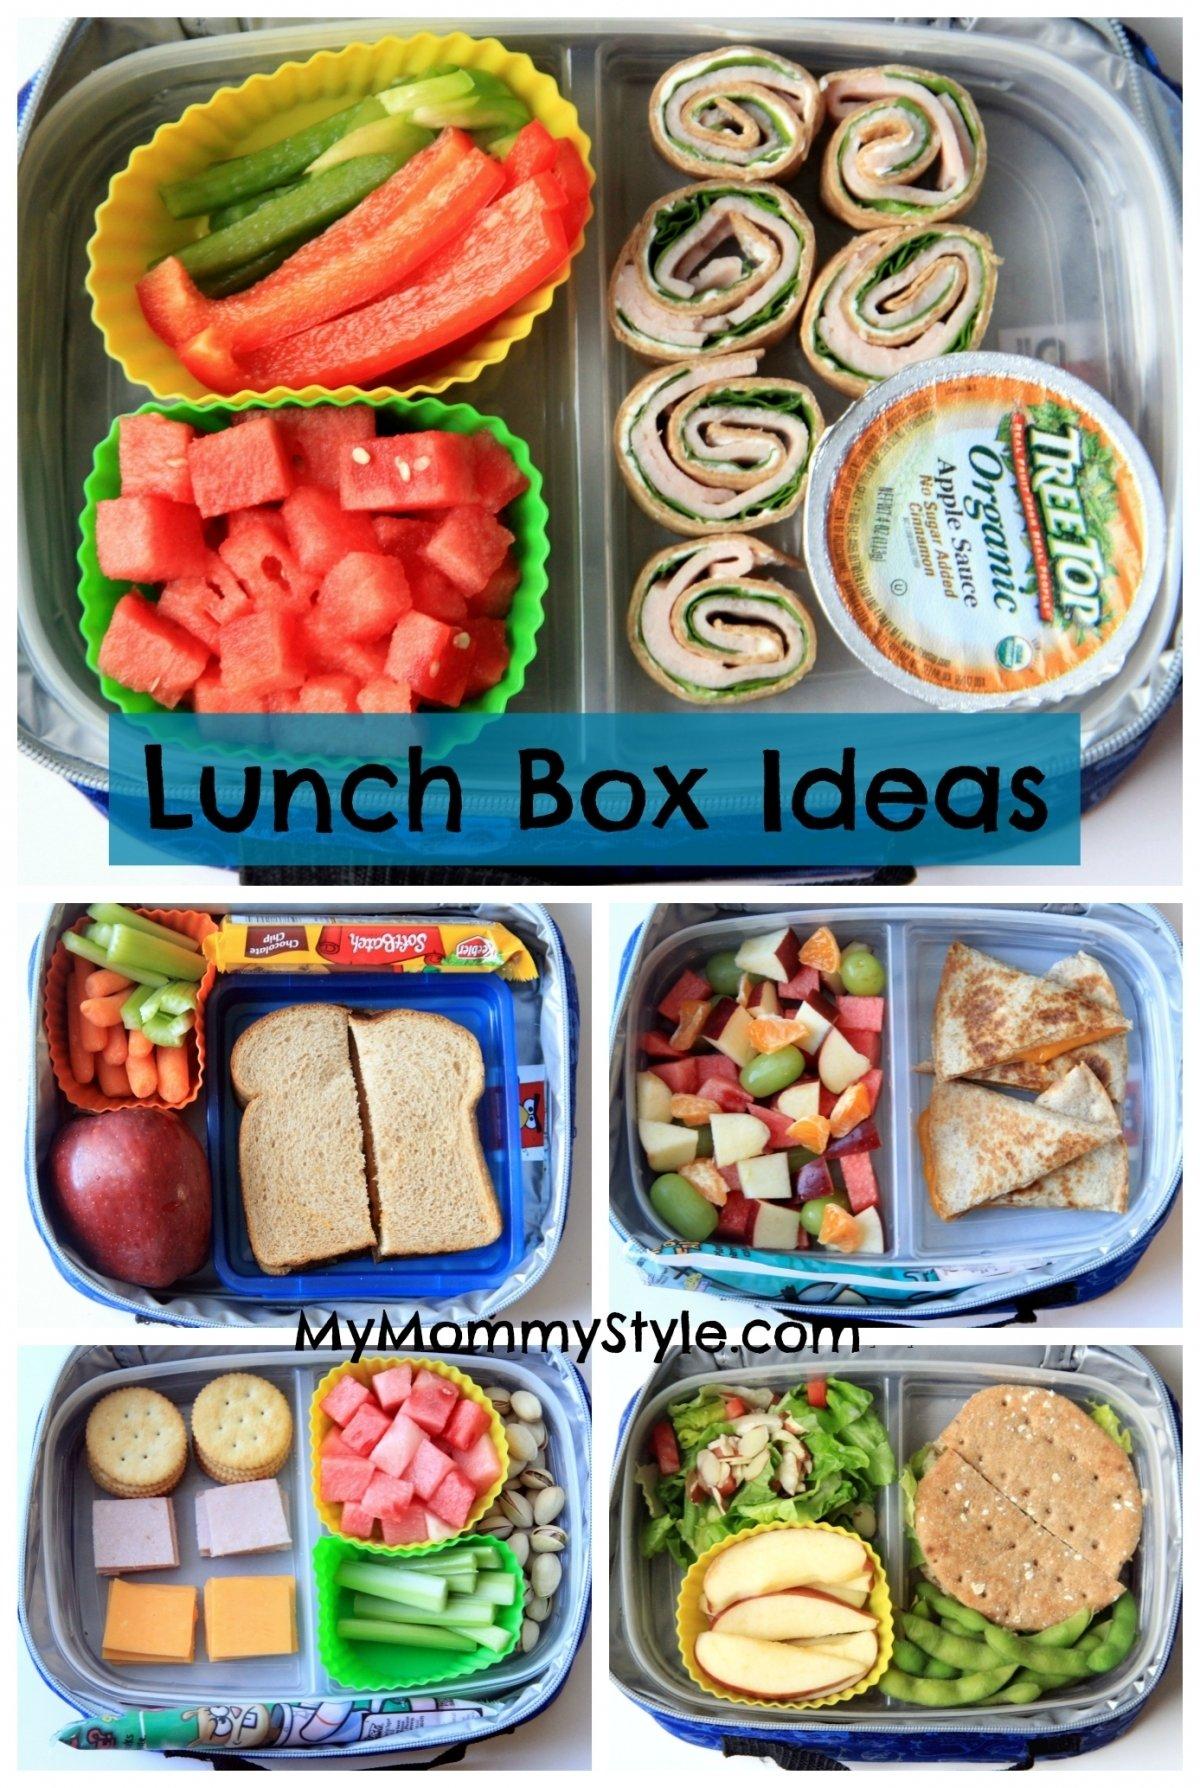 lunch-box-ideas-kid-lunches-school-lunch-cold-lunch-ideas-healthy